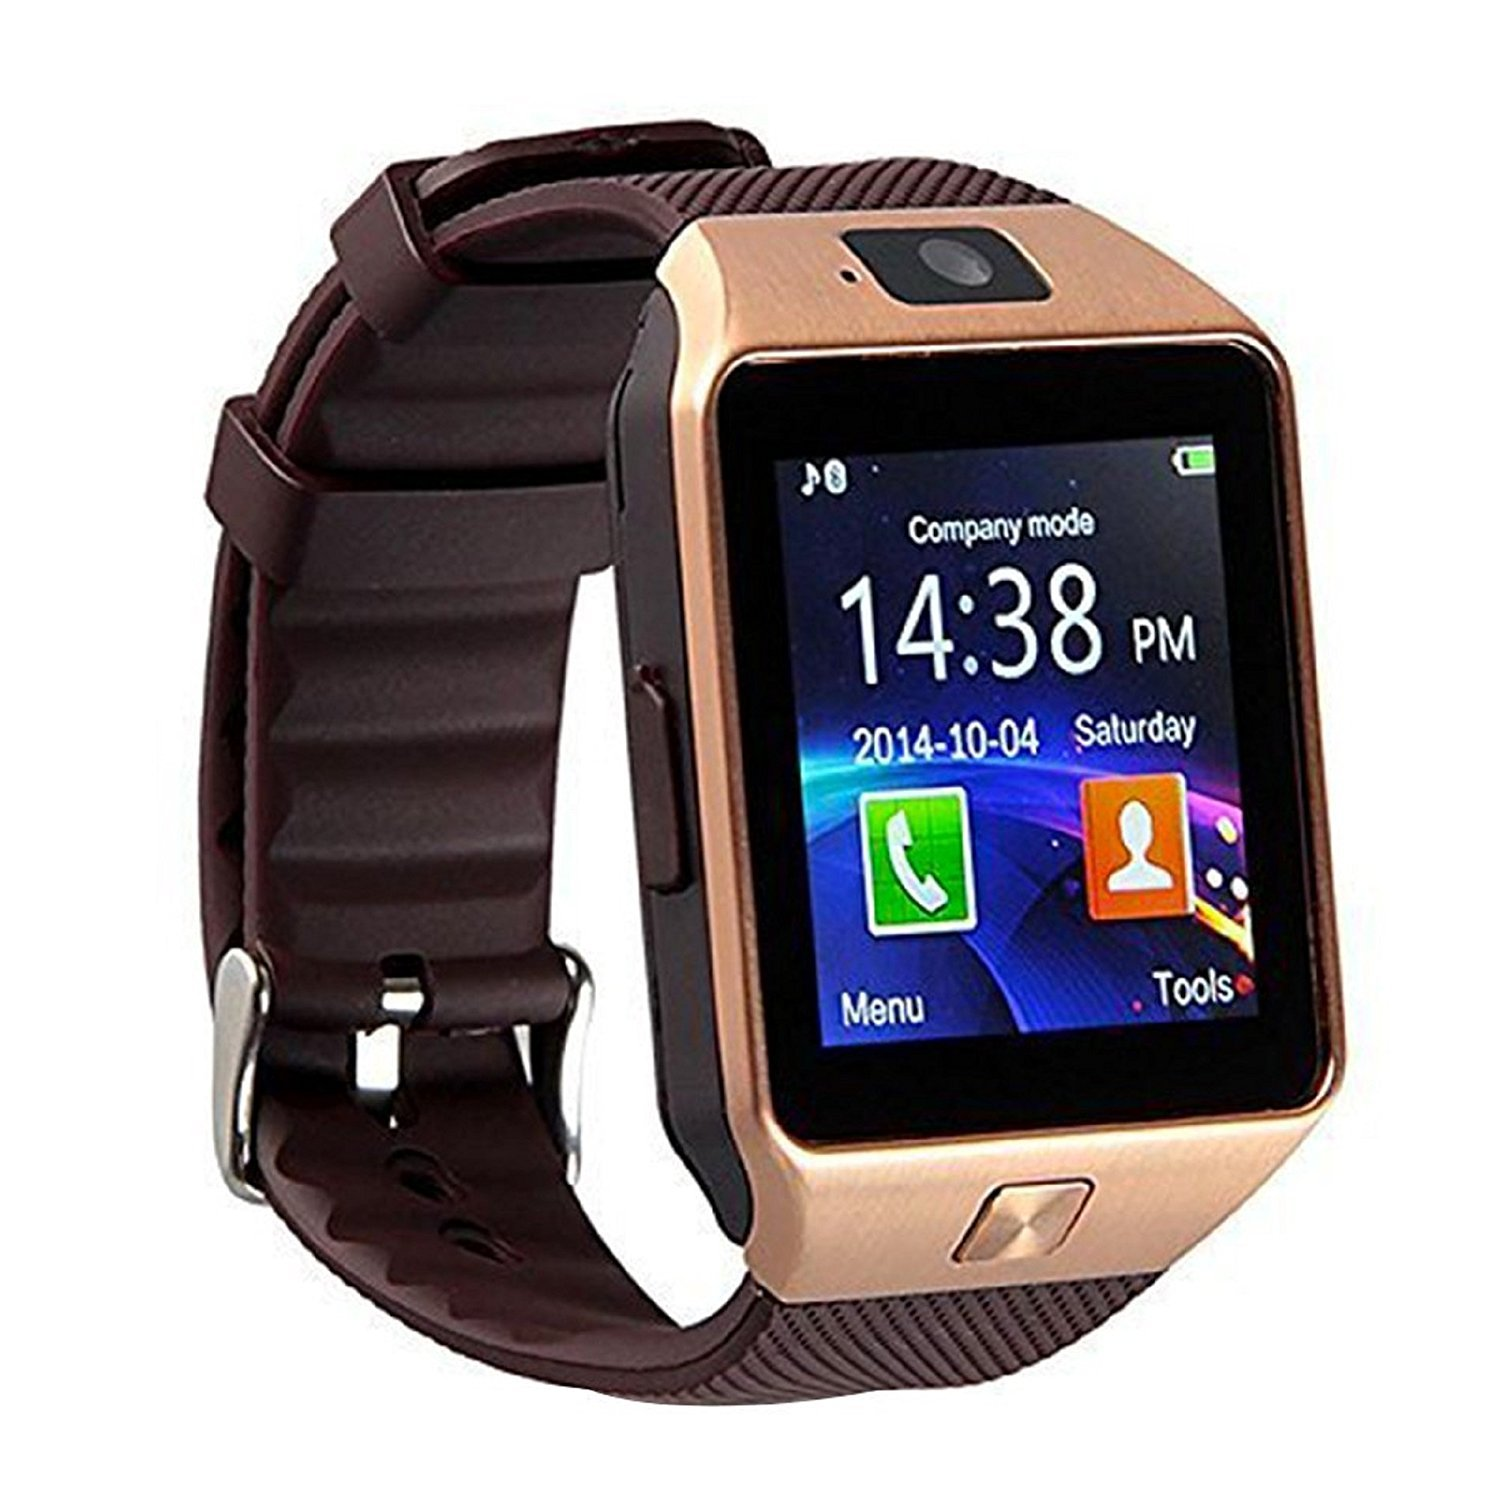 DZ09 Bluetooth Smart Watch Touch Screen with Camera, SIM Card TF/SD Card Slot, Pedometer Activity Tracker for iphone android phones Samsung HUAWEI PK GT08 A1 (Gold)